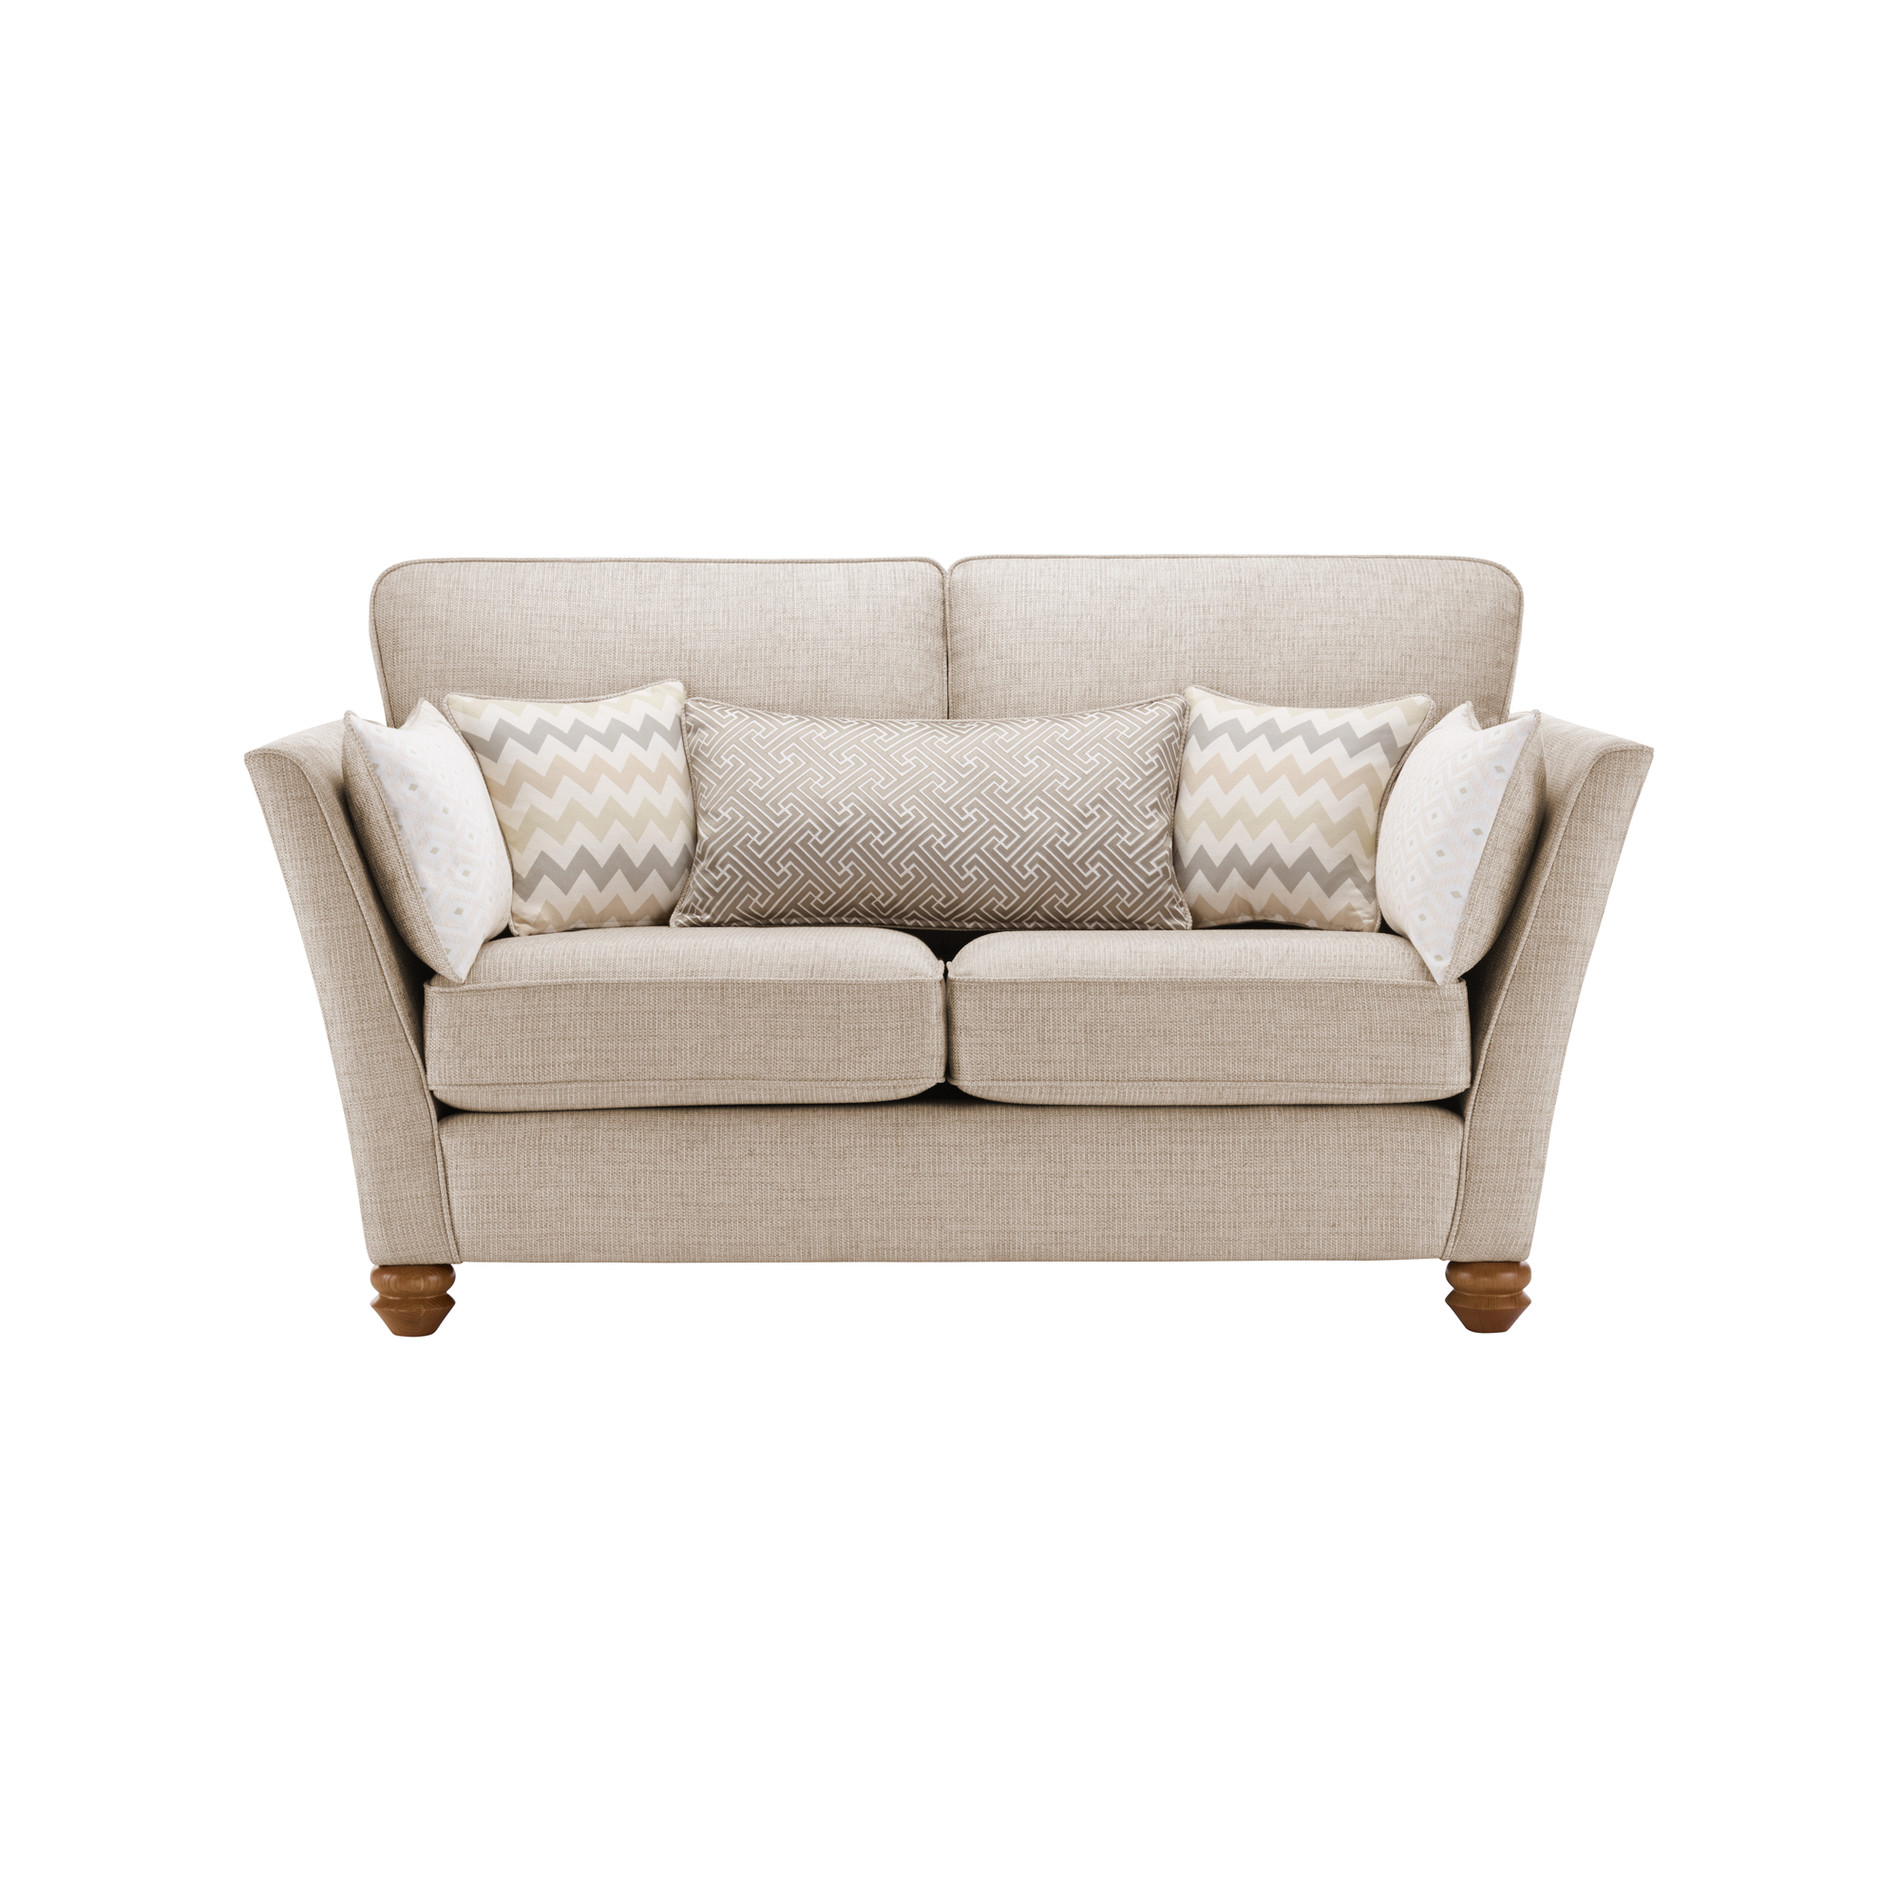 Gainsborough 2 seater sofa in beige by oak furniture land for Sofa 8 seater